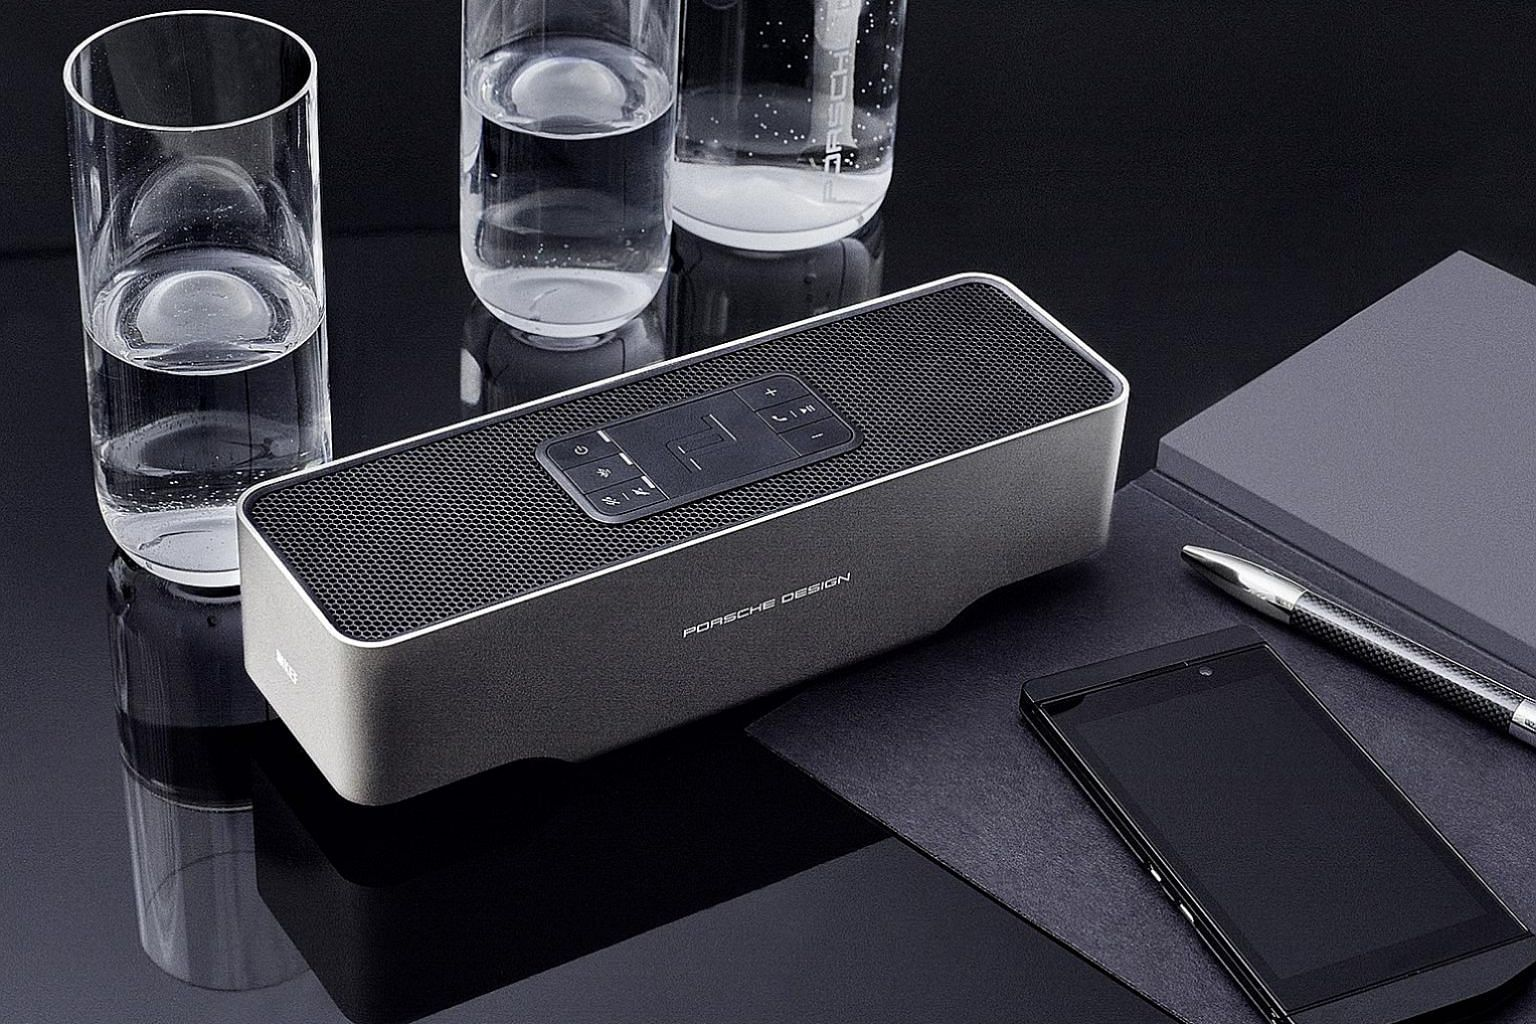 With the KEF Porsche Design Gravity One speaker, sound gets blasted upwards and around instead of in front as most speakers are designed to do.